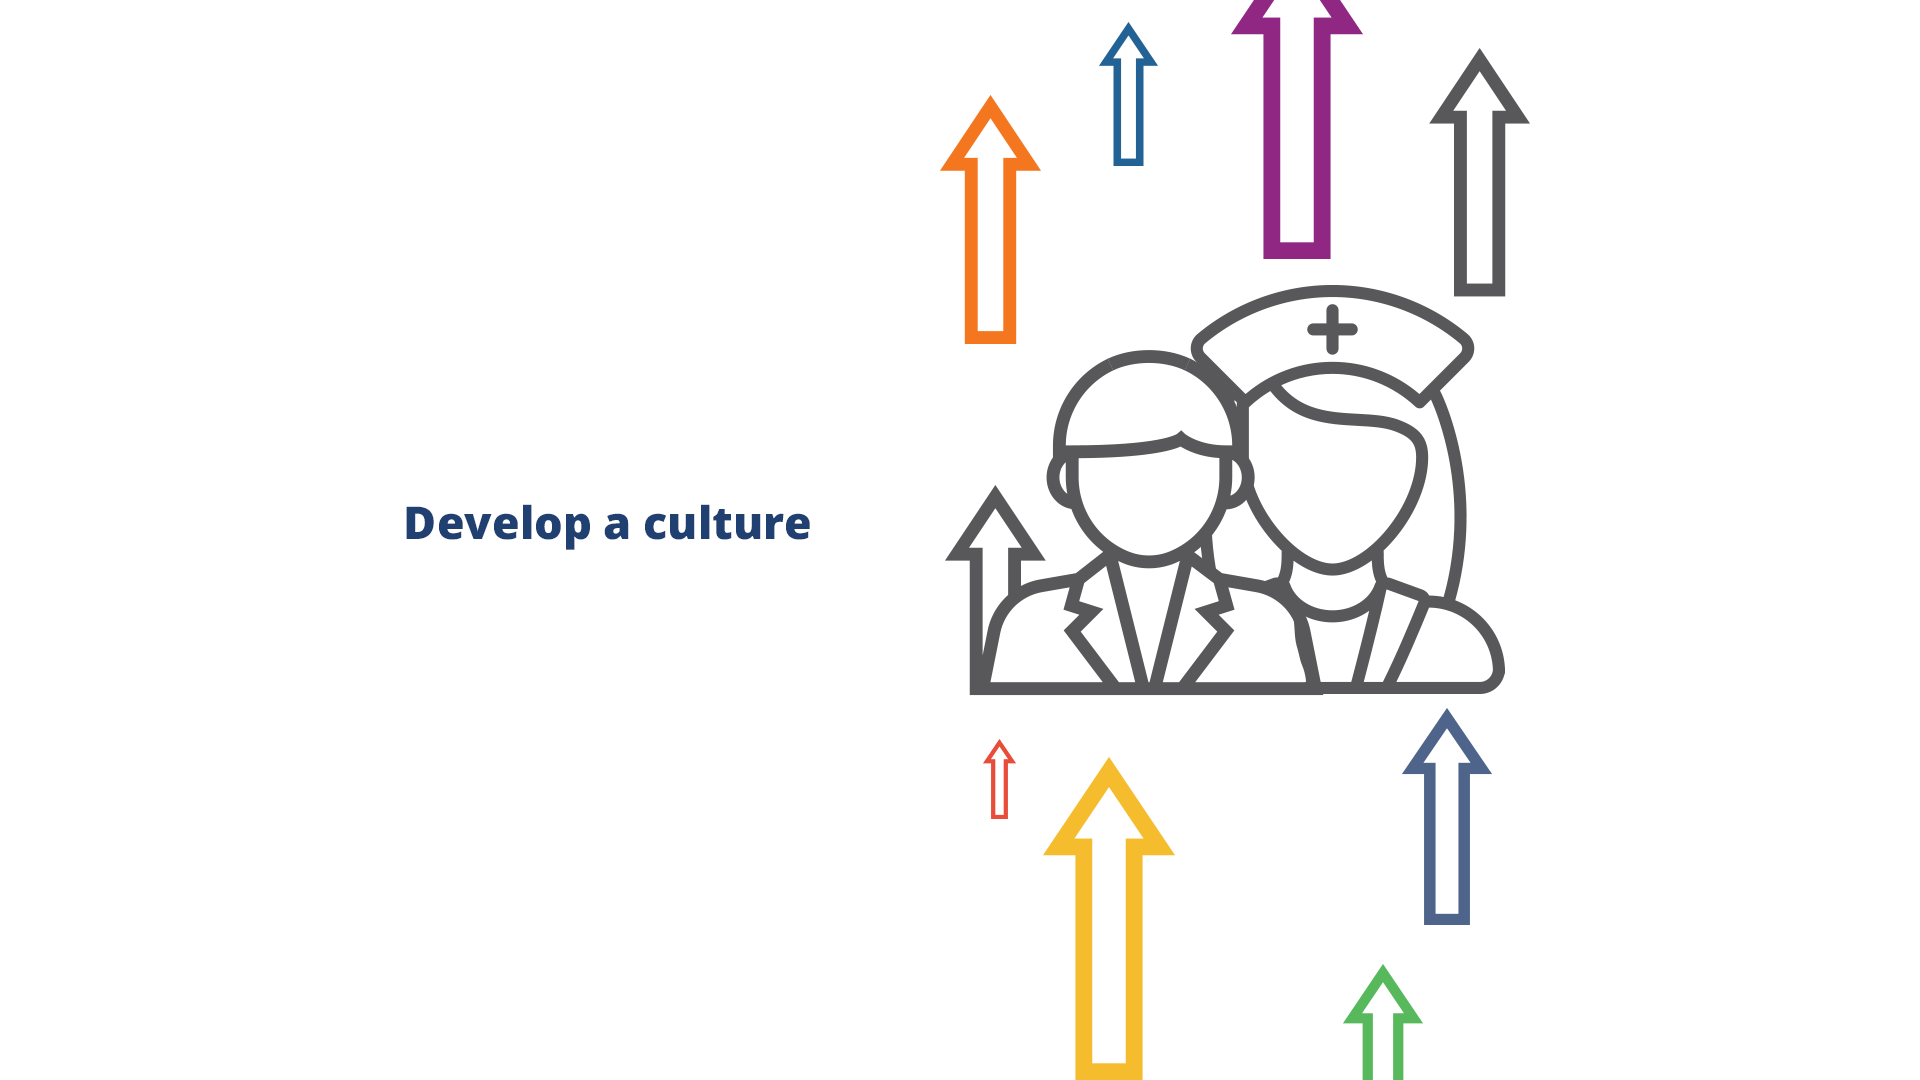 01513335_promote_lifelong_learning_styleframes_v2sf_07---_...to-develop-a-culture....png